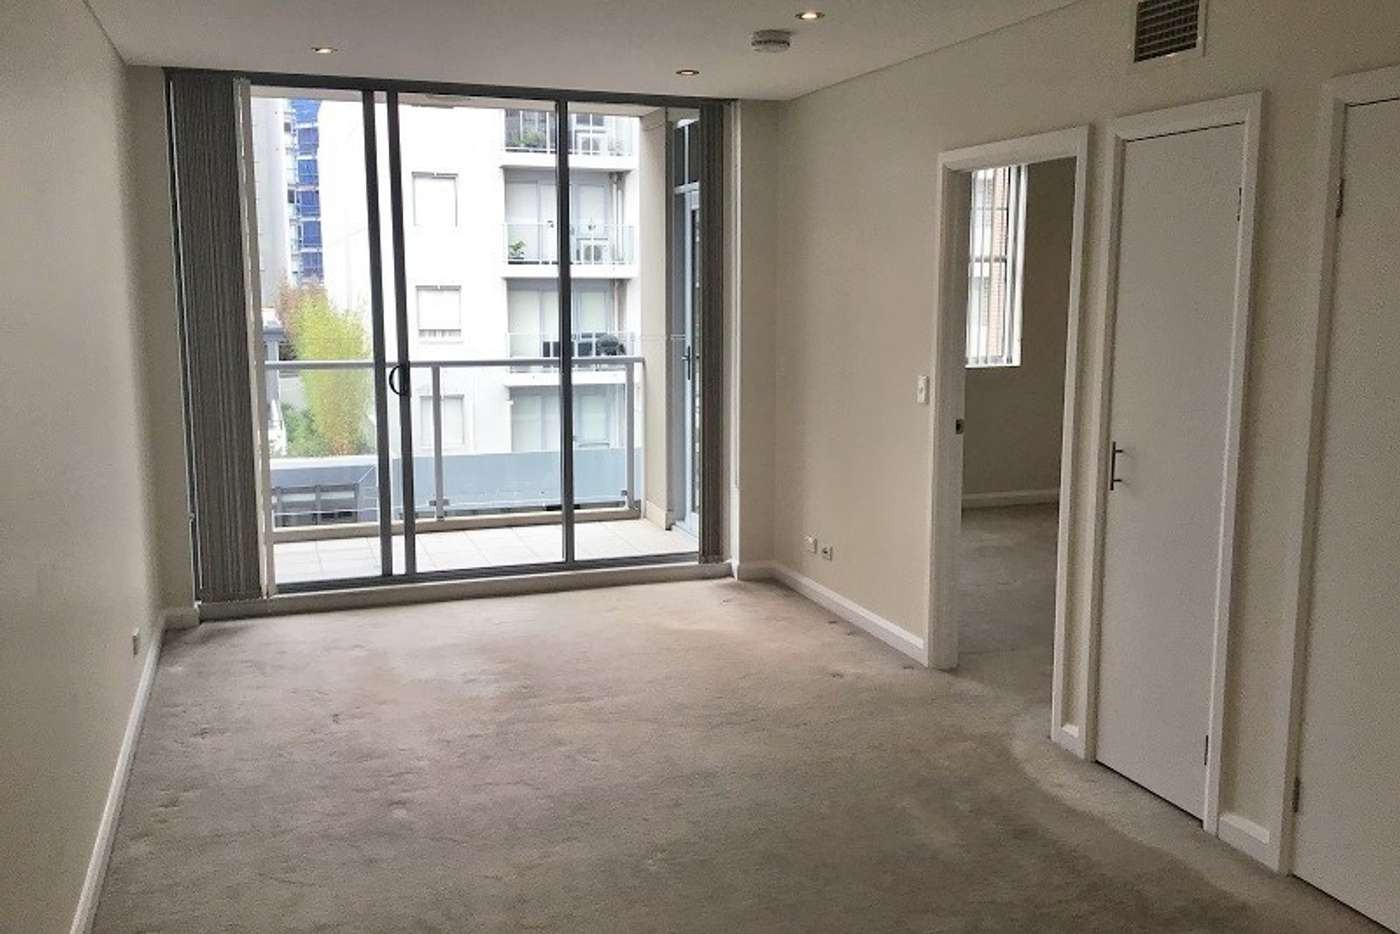 Sixth view of Homely apartment listing, 33/30-36 Albany Street, St Leonards NSW 2065